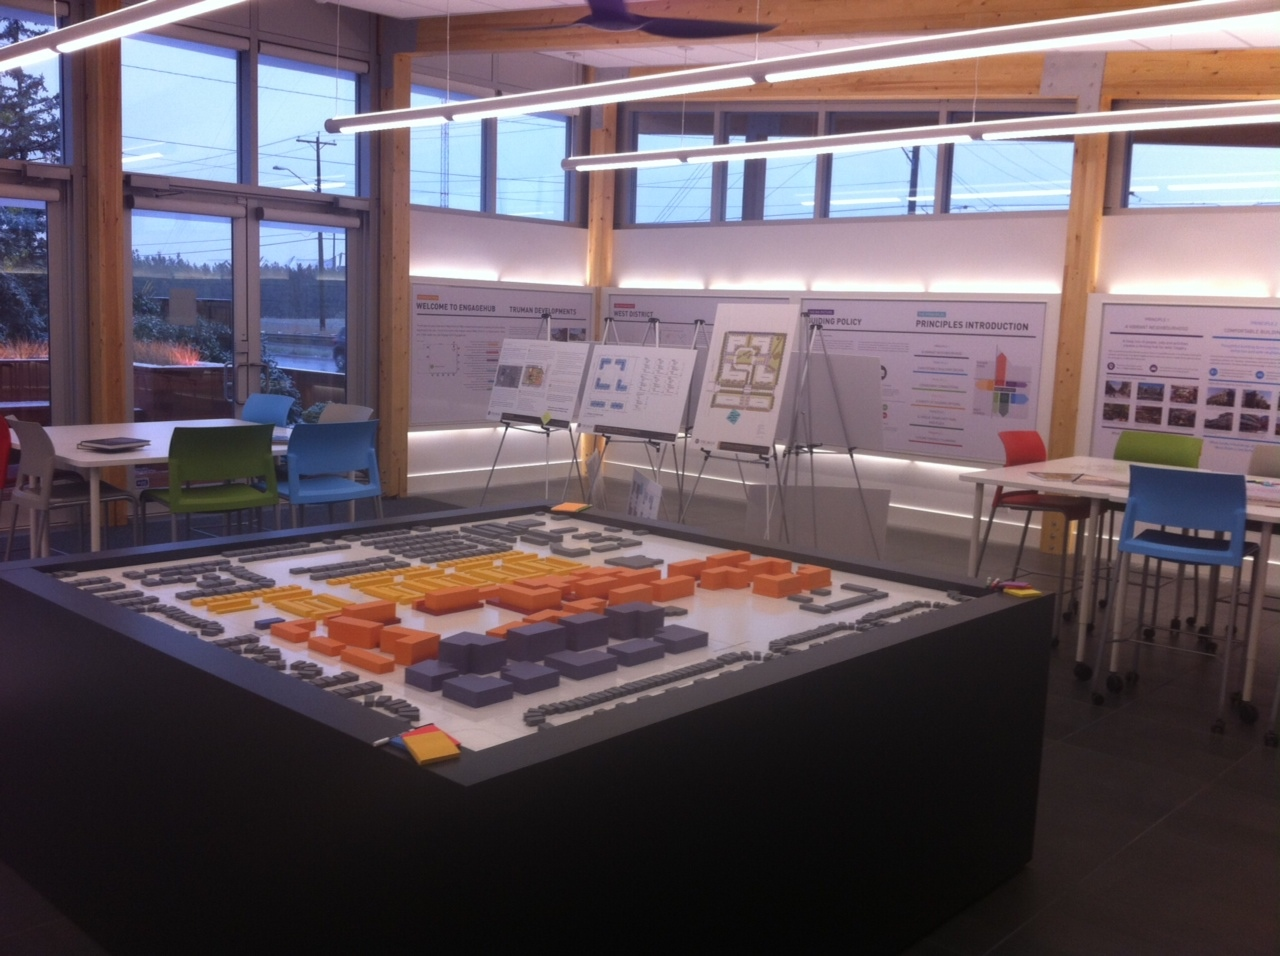 Inside the Engagement Hub is a massing model of the proposed community, along with lots of display boards with facts, figures and pictures.